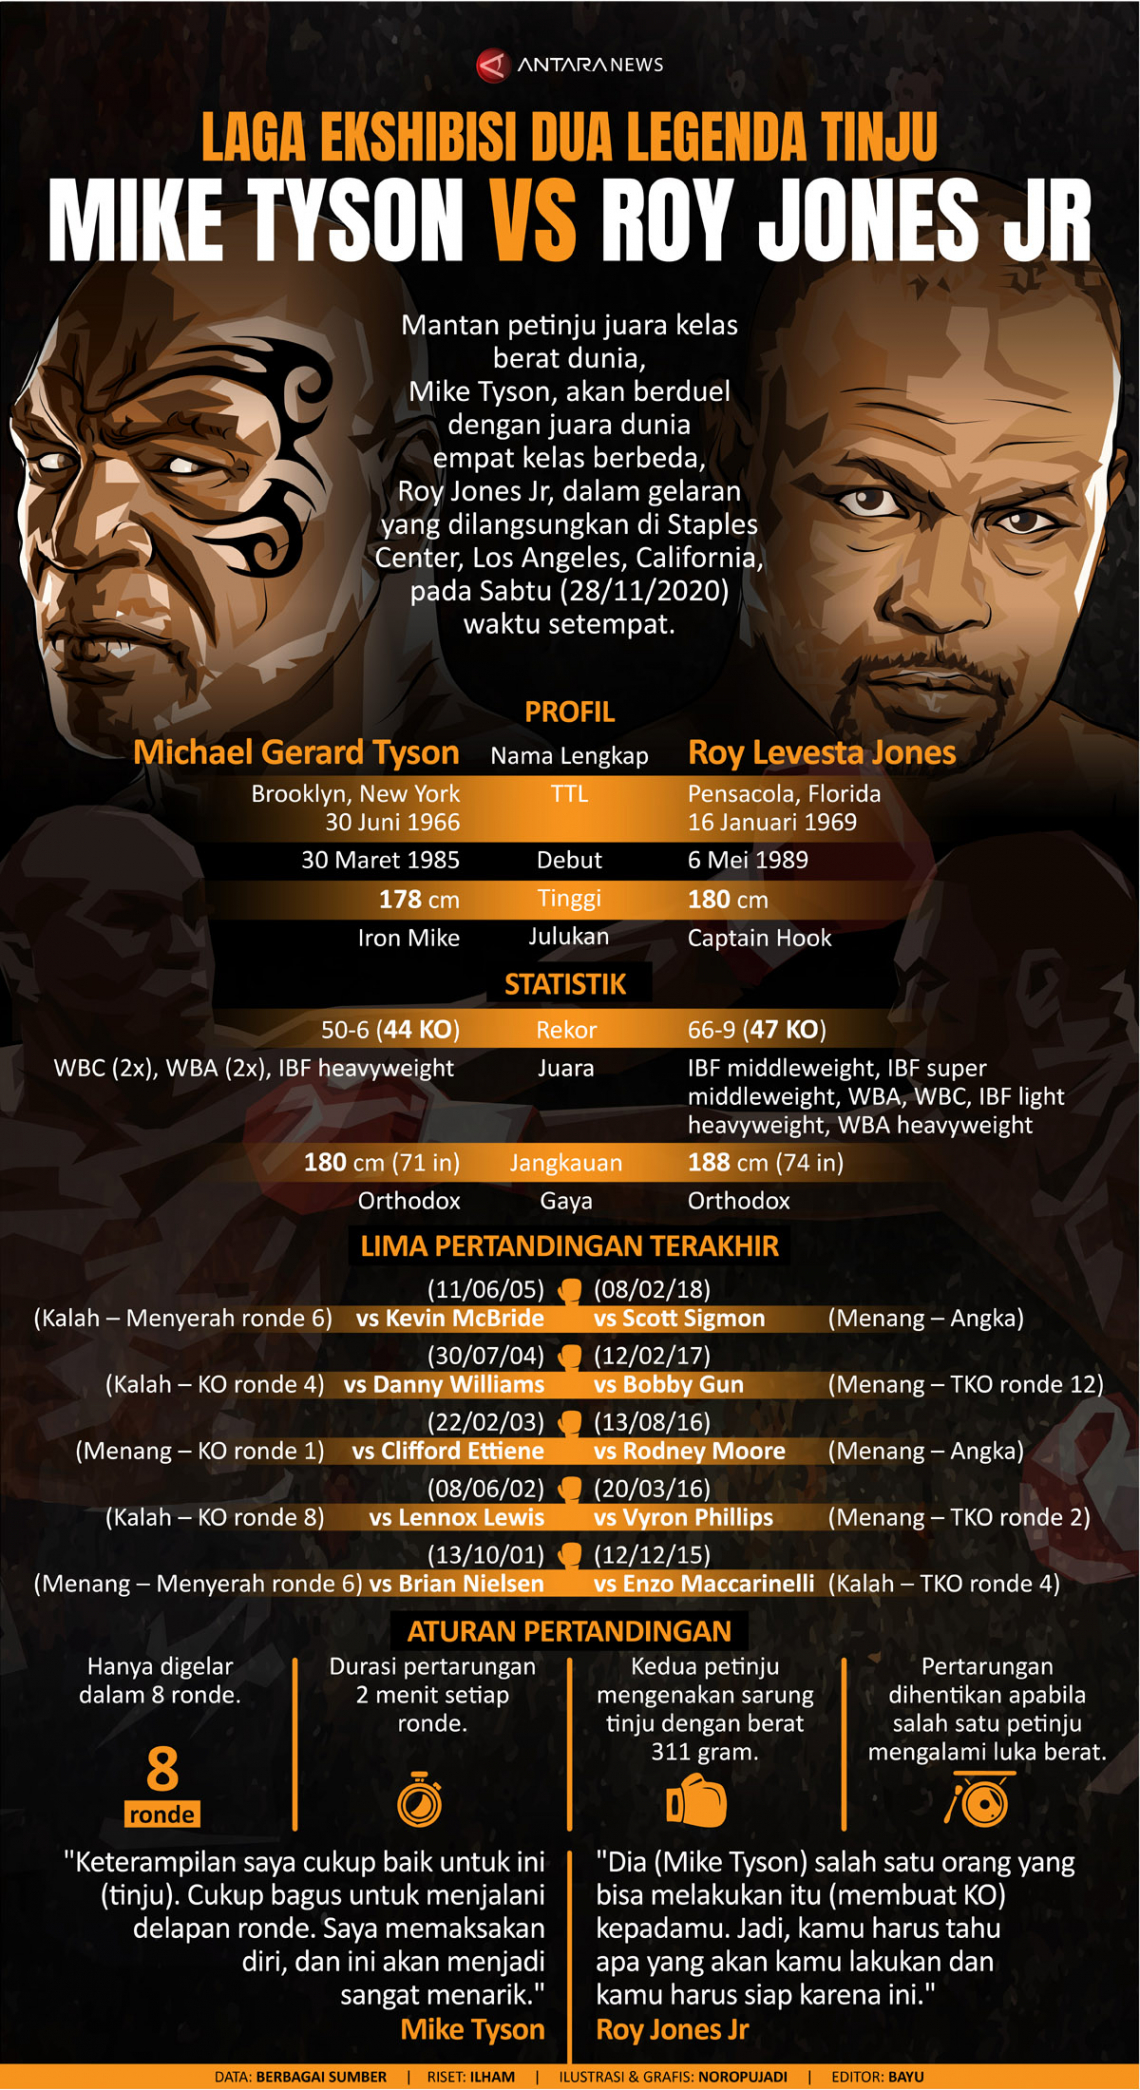 Laga ekshibisi dua legenda tinju Mike Tyson vs Roy Jones Jr